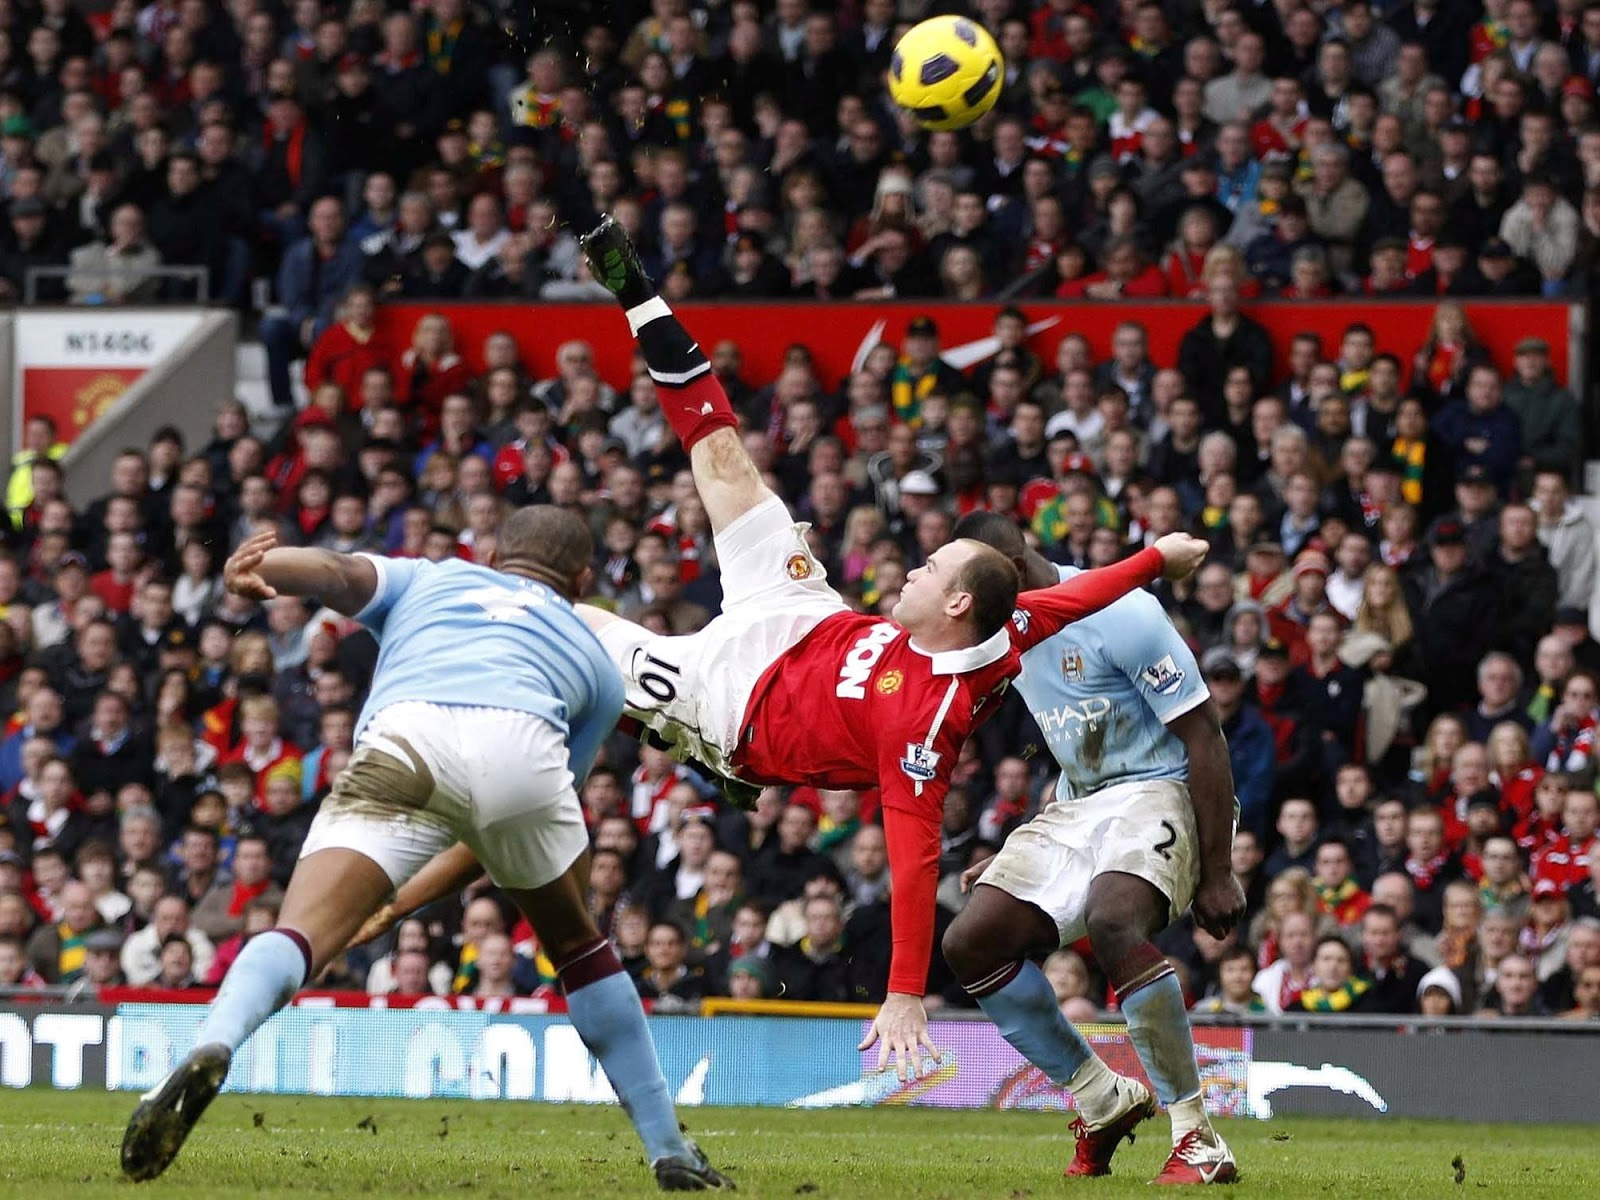 Wayne Rooney Overhead Kick Vs Man City